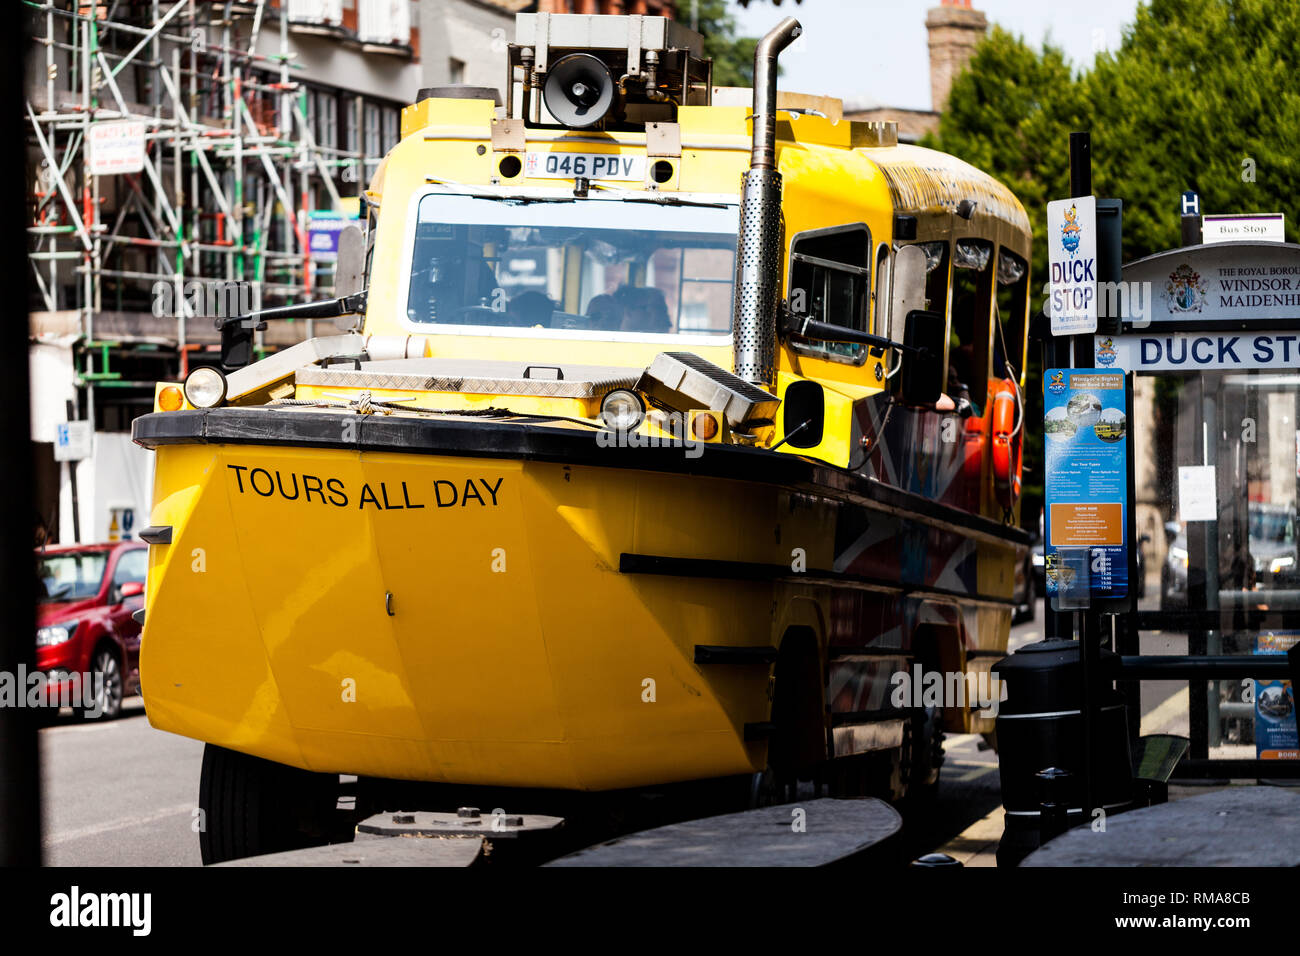 BIRMINGHAM, UK - March 2018 London Duck Tours Amphibious Vehicle use for Sightseeing on Land and Water. Yellow Transportation Parked on Windsor Roadsi - Stock Image